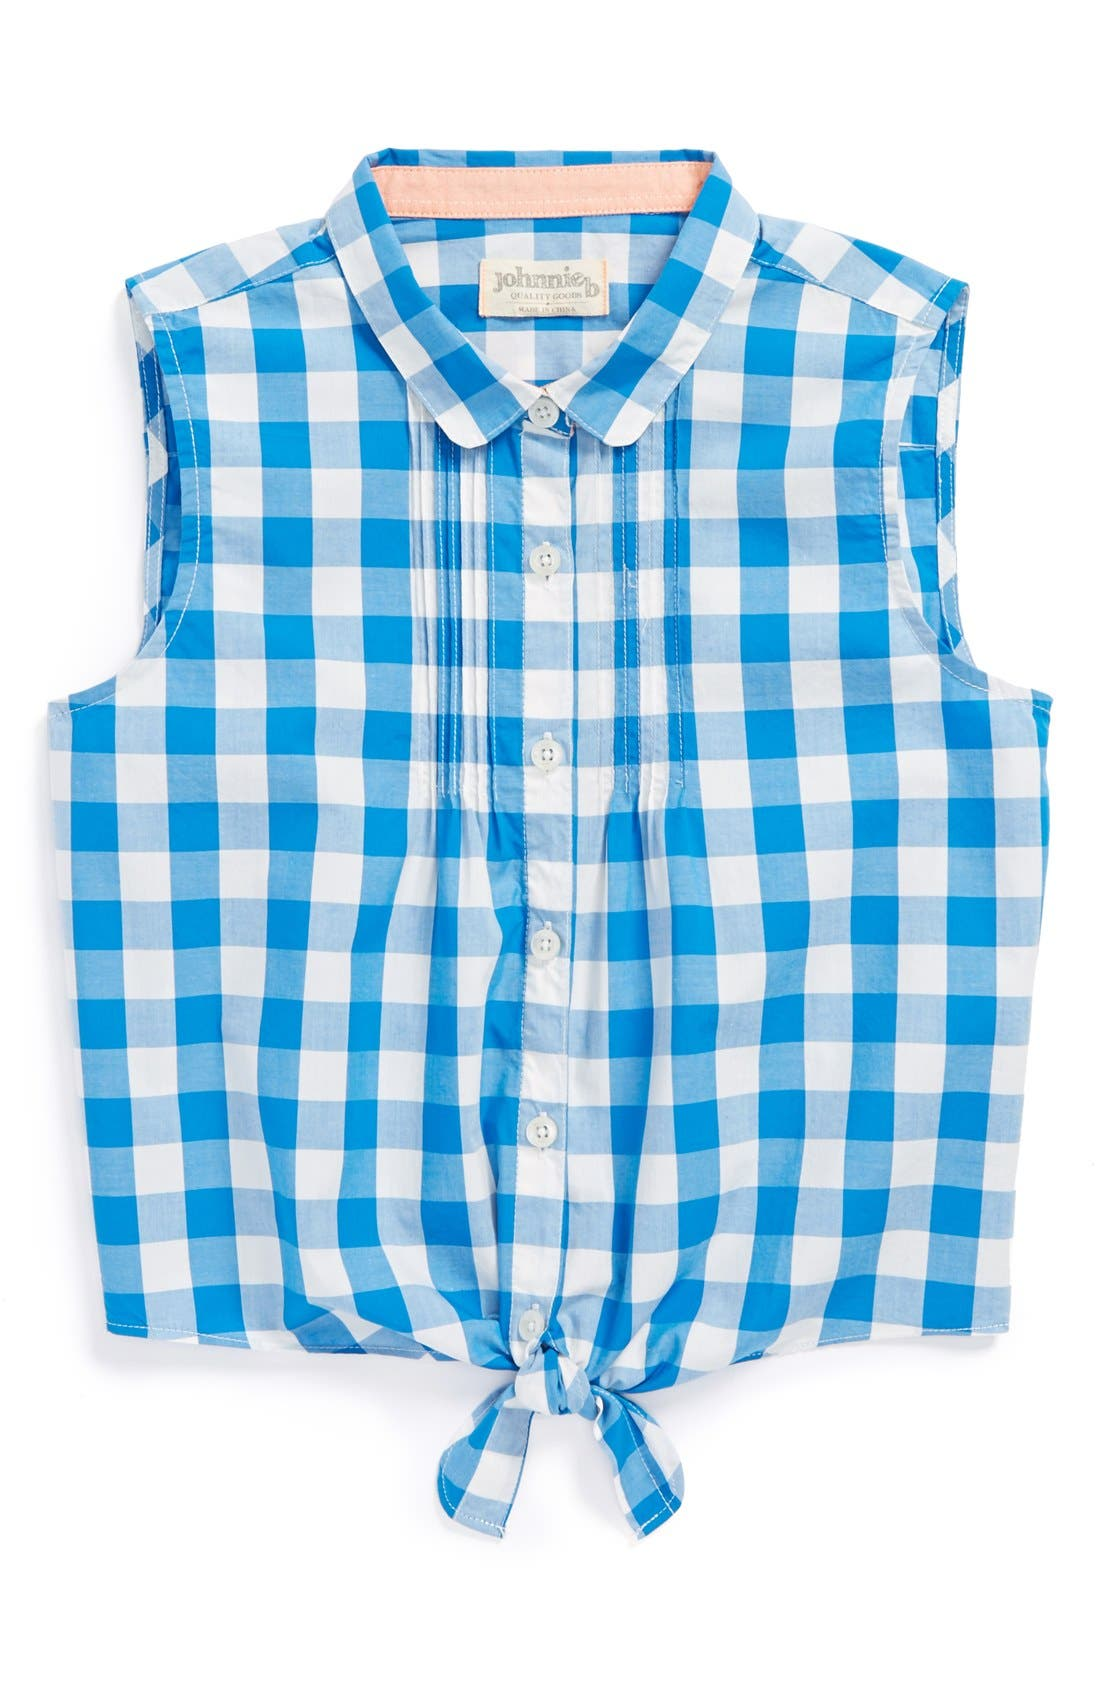 Alternate Image 1 Selected - Johnnie B by Boden 'Tie Front' Sleeveless Shirt (Big Girls)